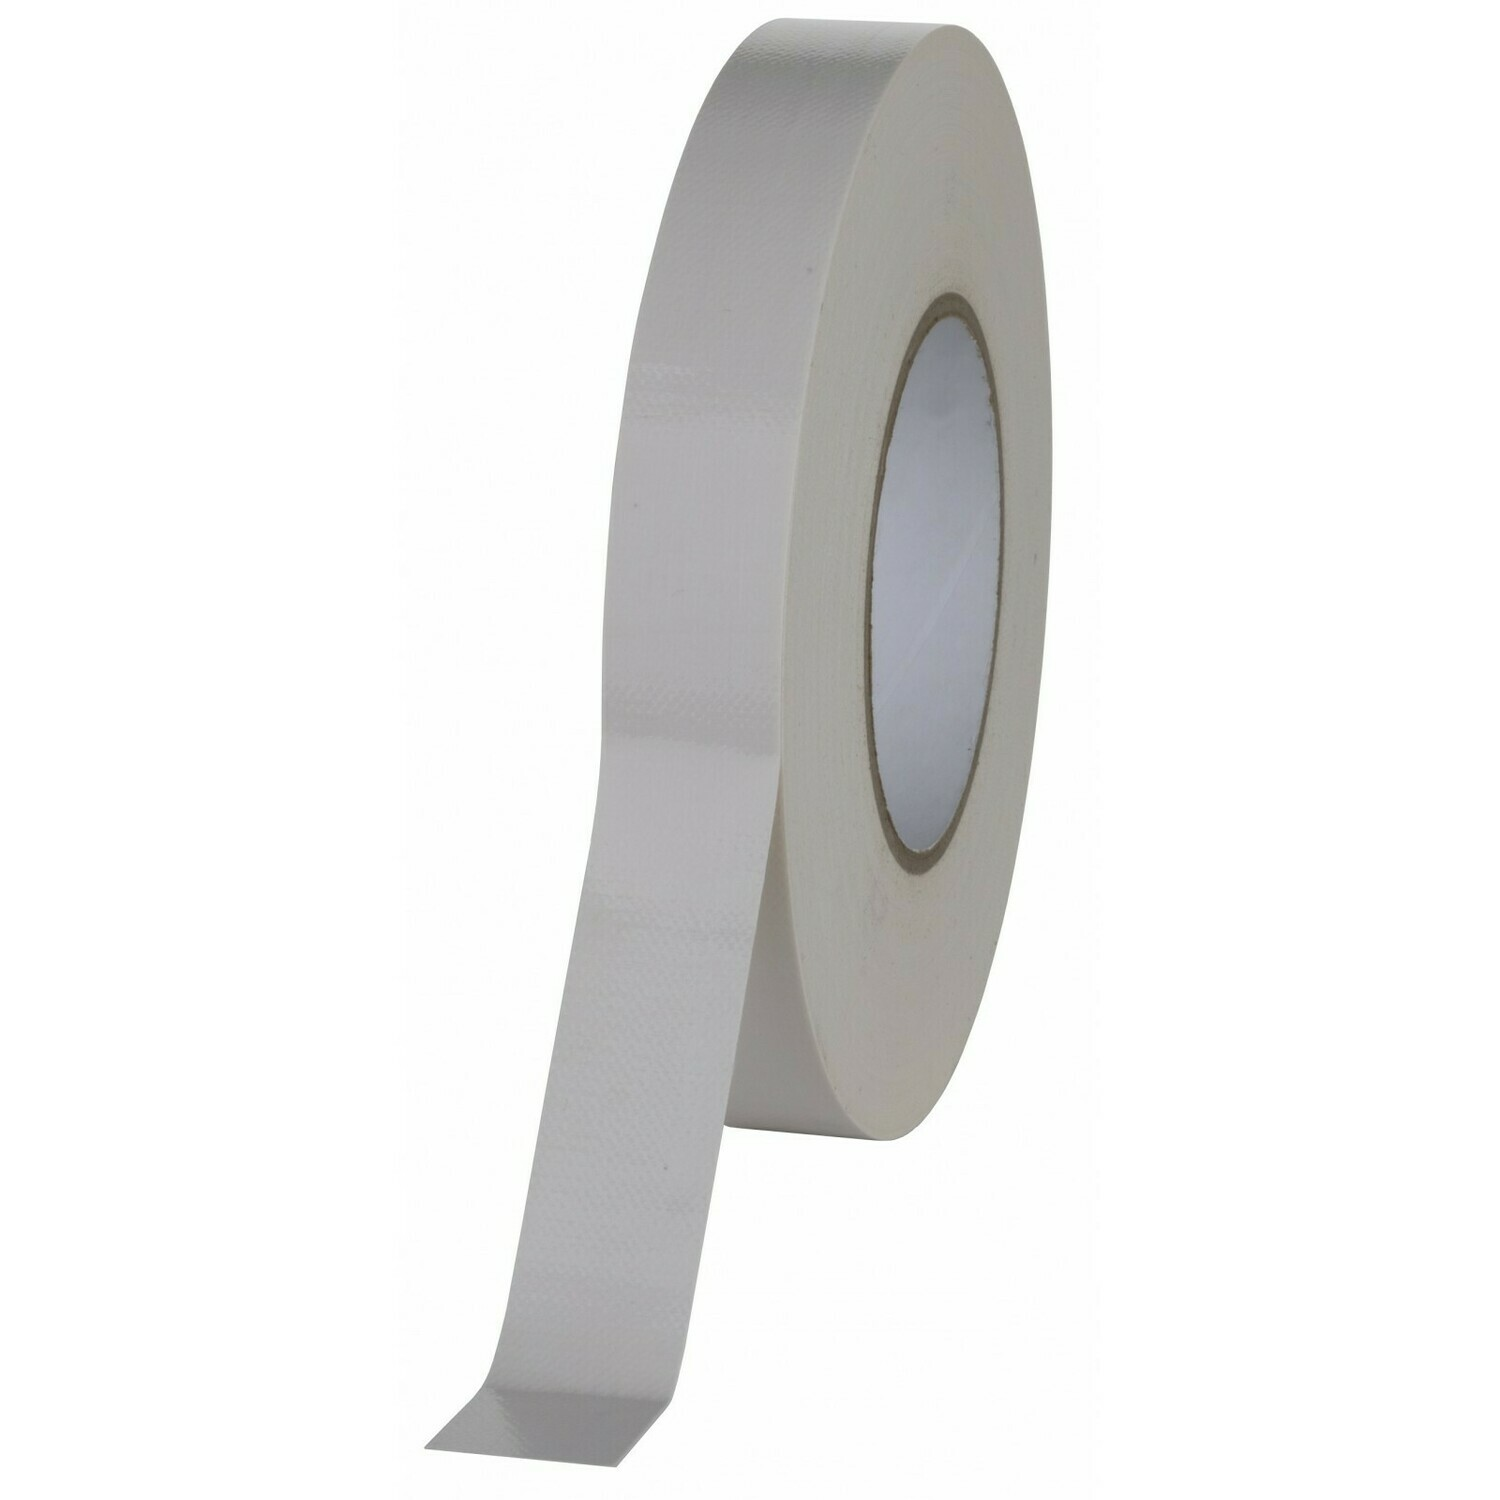 Briteq GAFFER TAPE STD 25 WHITE